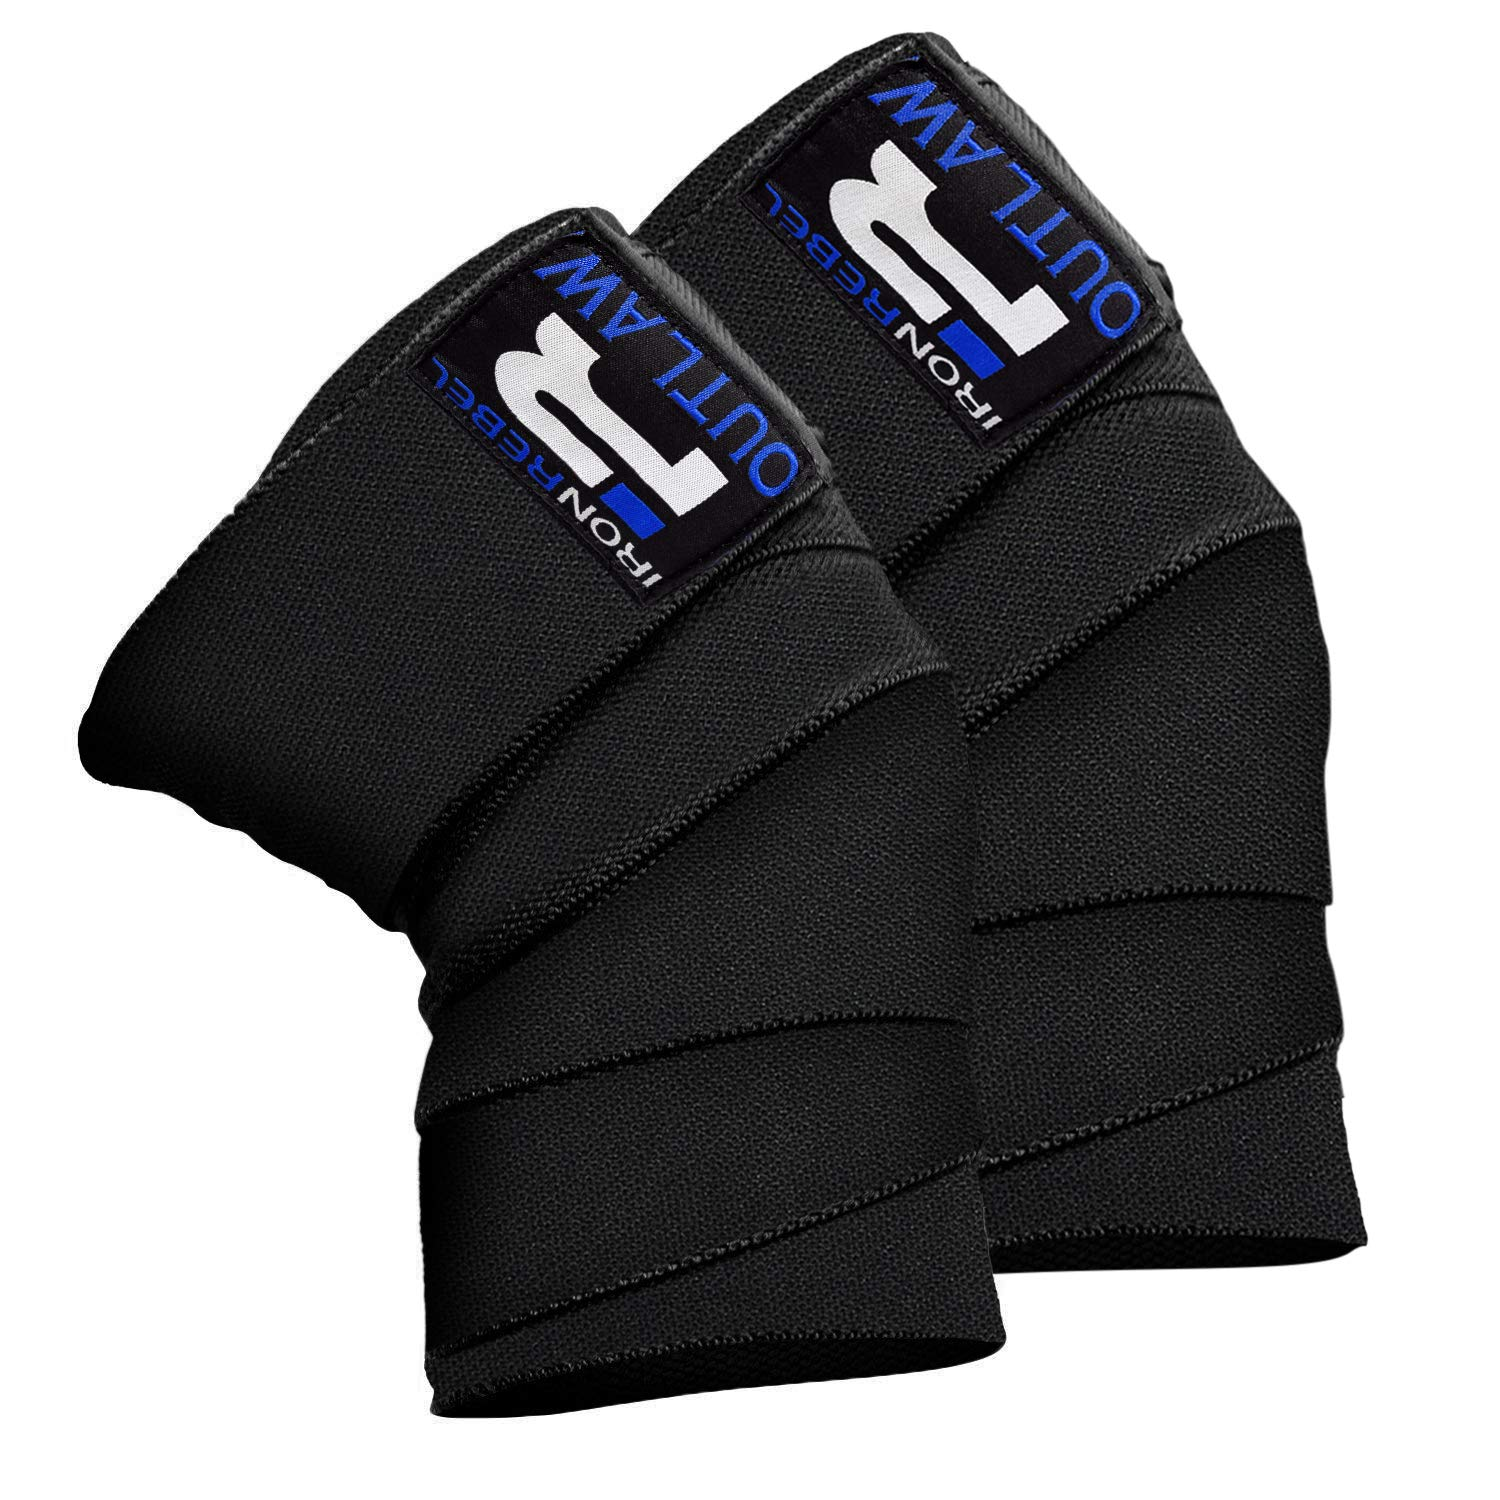 Iron Rebel Outlaw Knee Wraps - Strong and Durable for Advanced Lifters - Support and Stability in Squats, Powerlifting, Bodybuilding or Cross Training - for Men and Women (Pair)